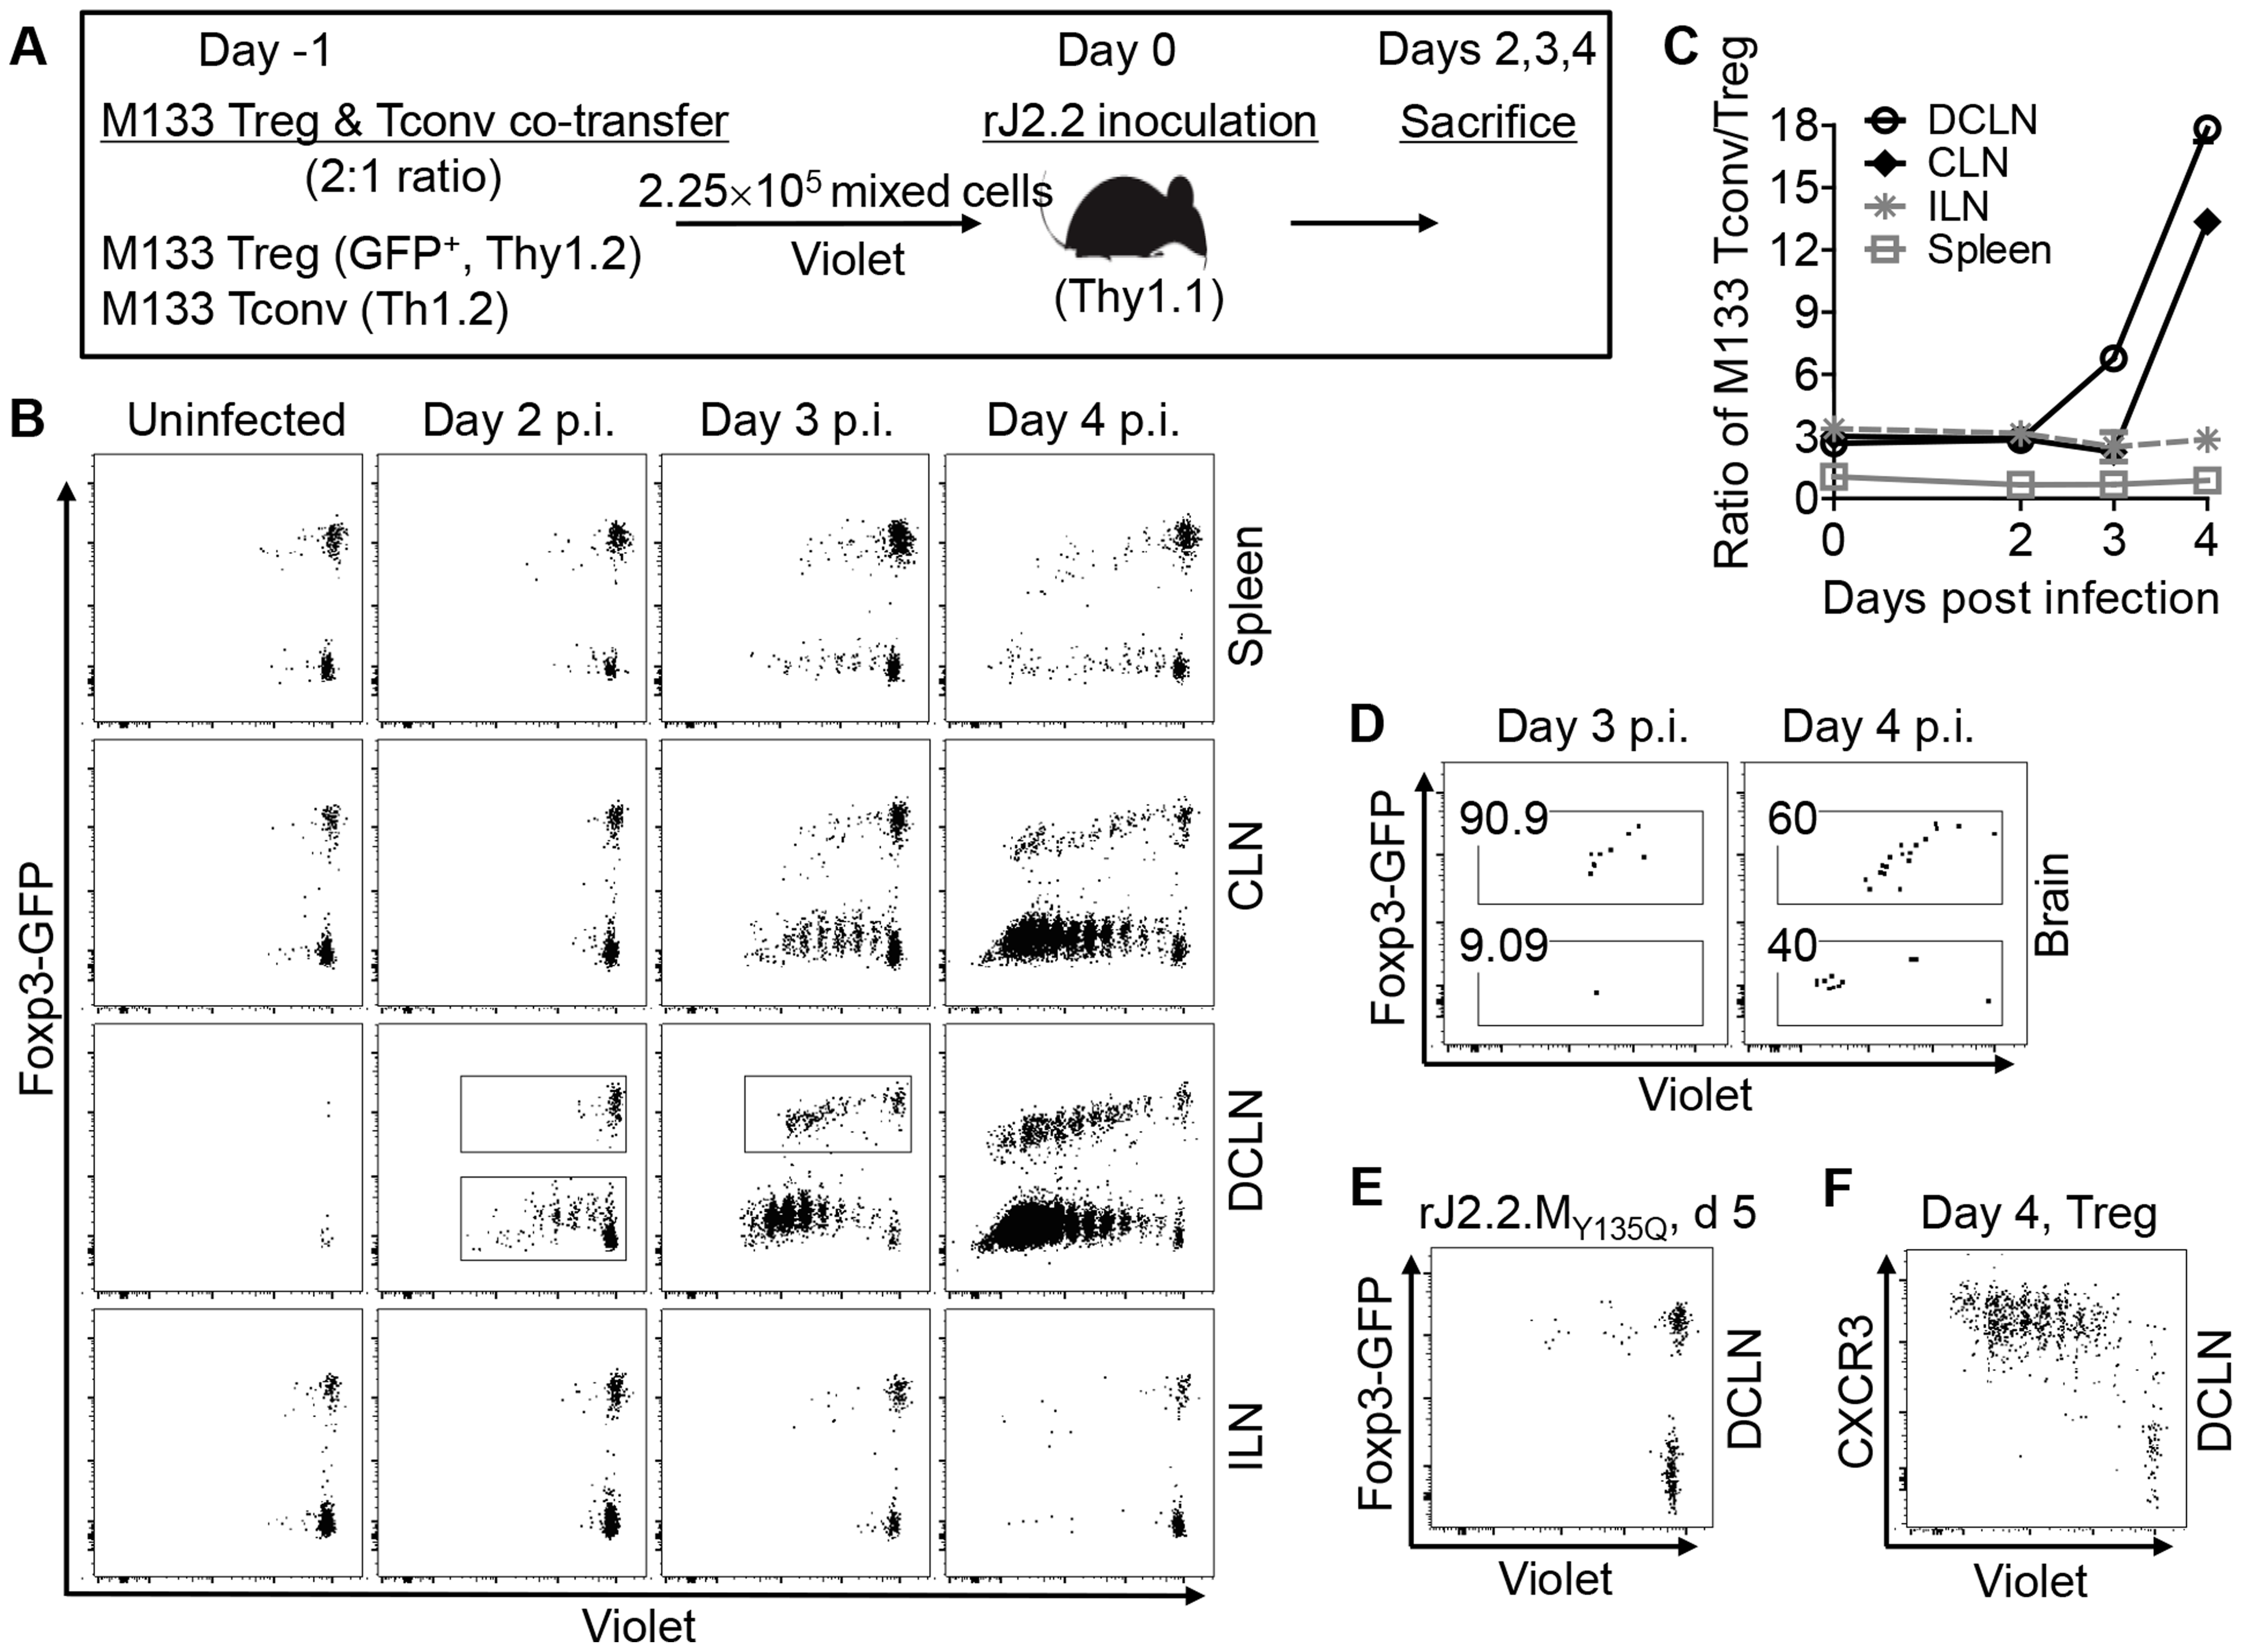 Initial proliferation of M133 Tregs in the DCLN is delayed compared to M133 Tconv.